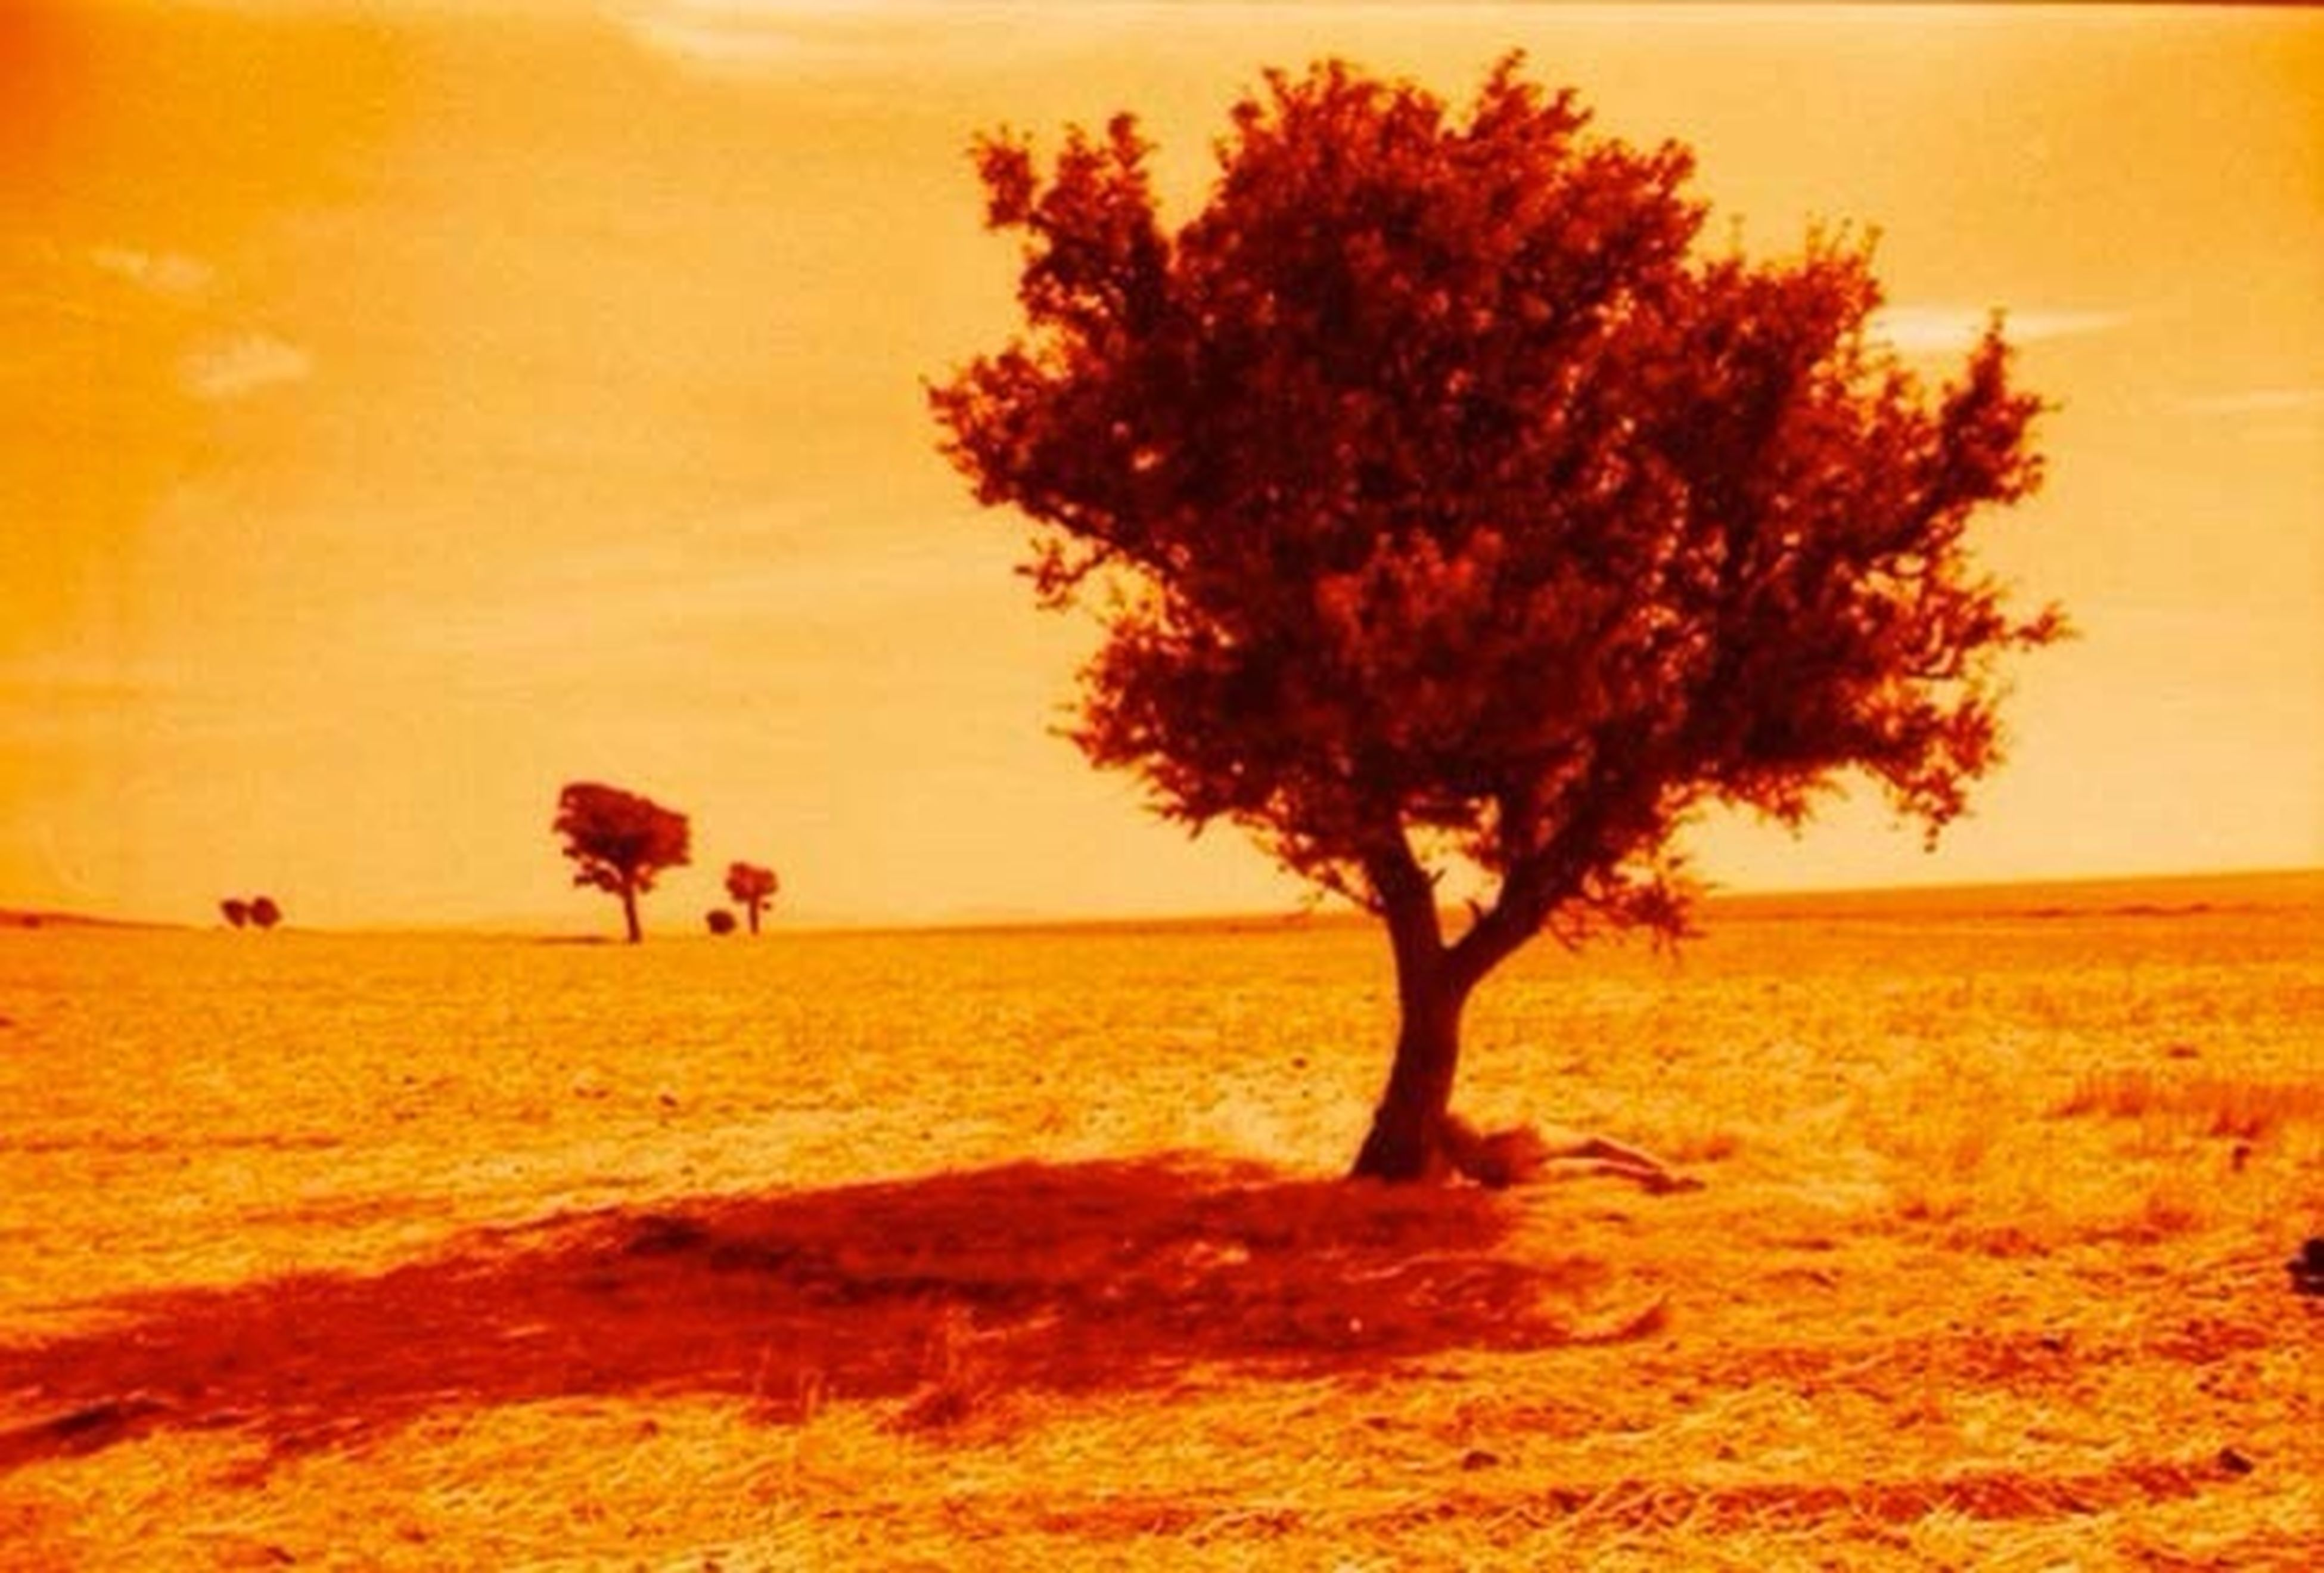 sunset, orange color, tranquil scene, tranquility, scenics, beauty in nature, sky, tree, landscape, nature, field, idyllic, sand, beach, growth, outdoors, horizon over water, no people, bare tree, remote